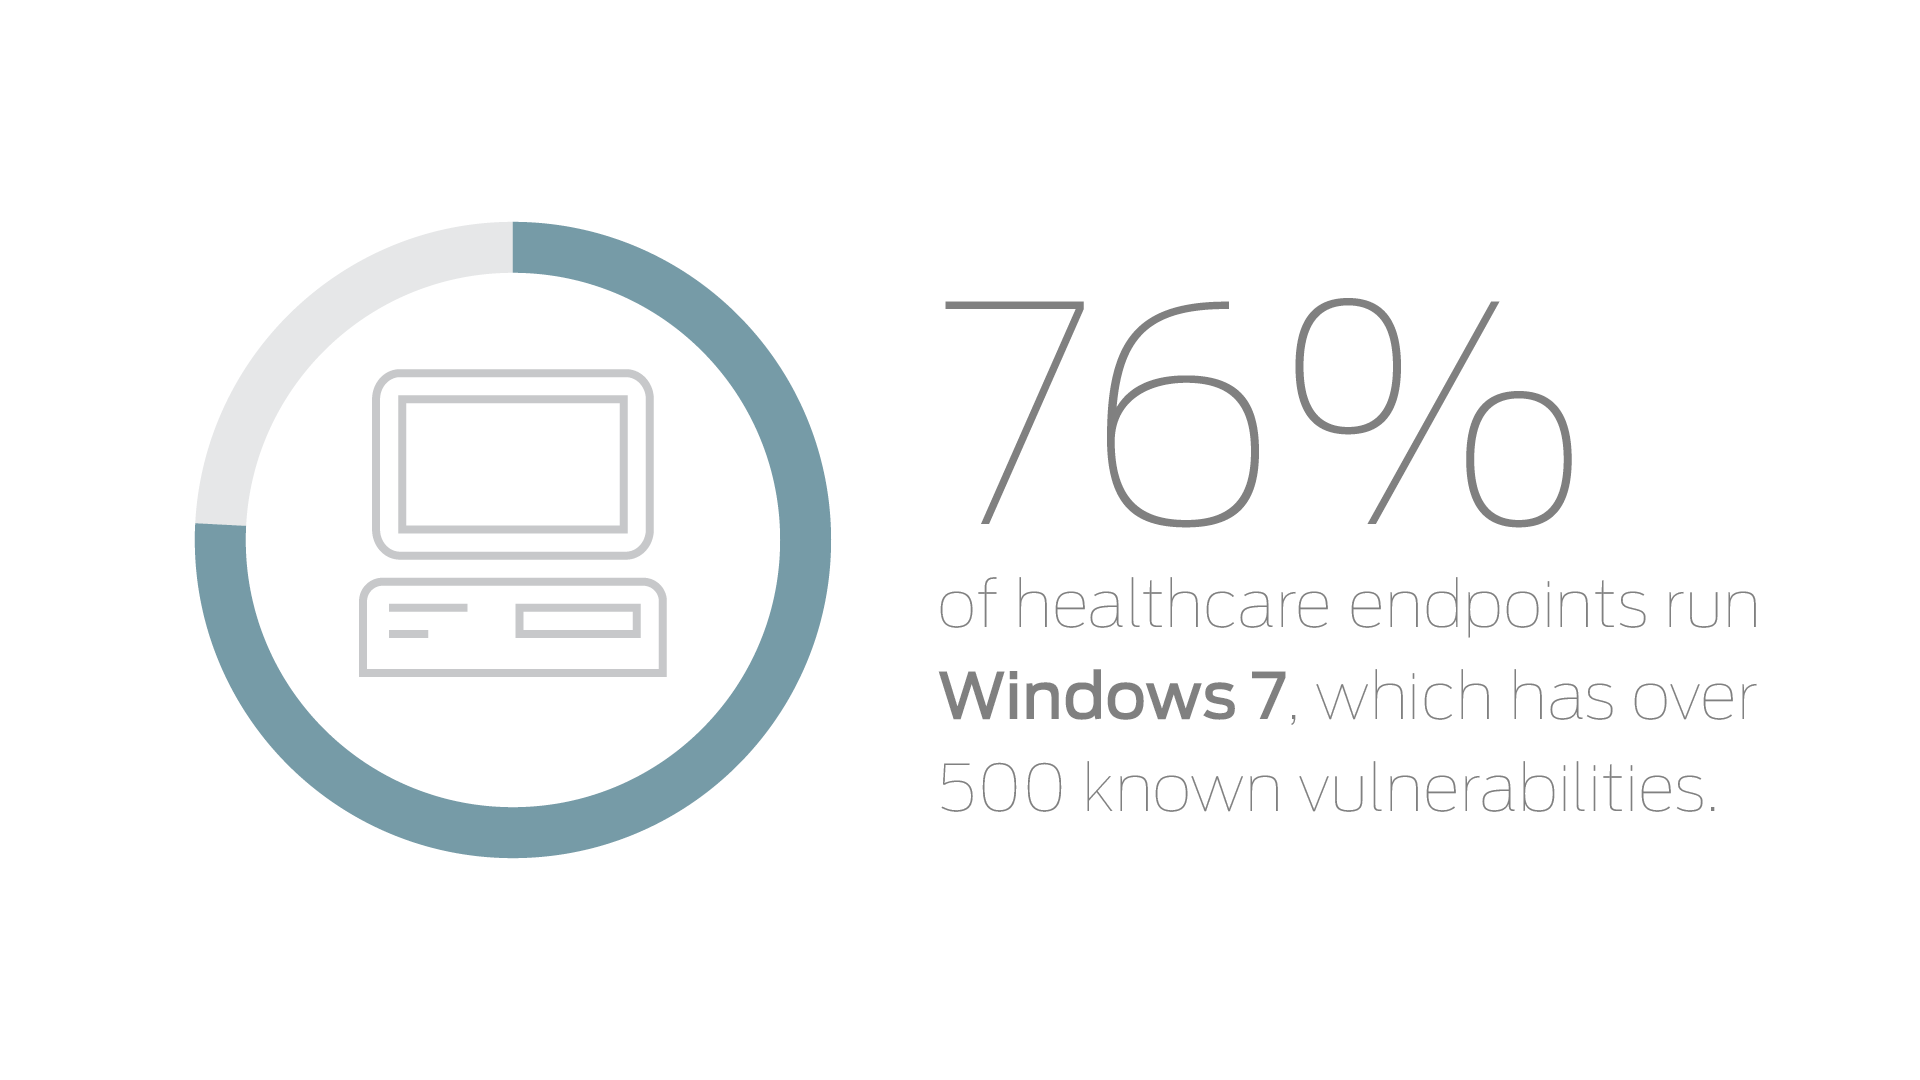 Healthcare Windows 7